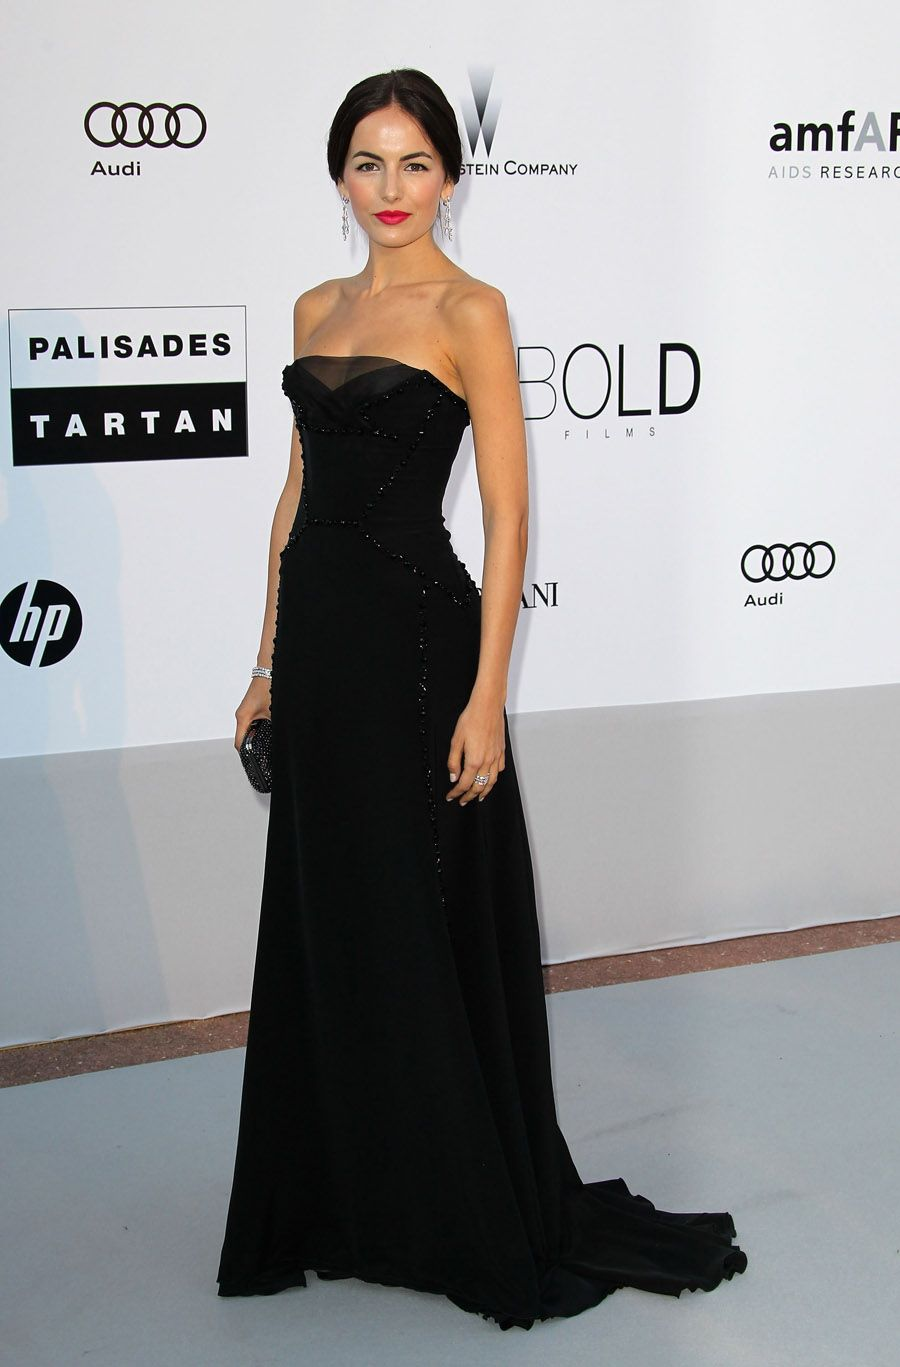 Camilla Belle in Gucci at the amfAR Cinema Against AIDS Gala in Cannes 2010